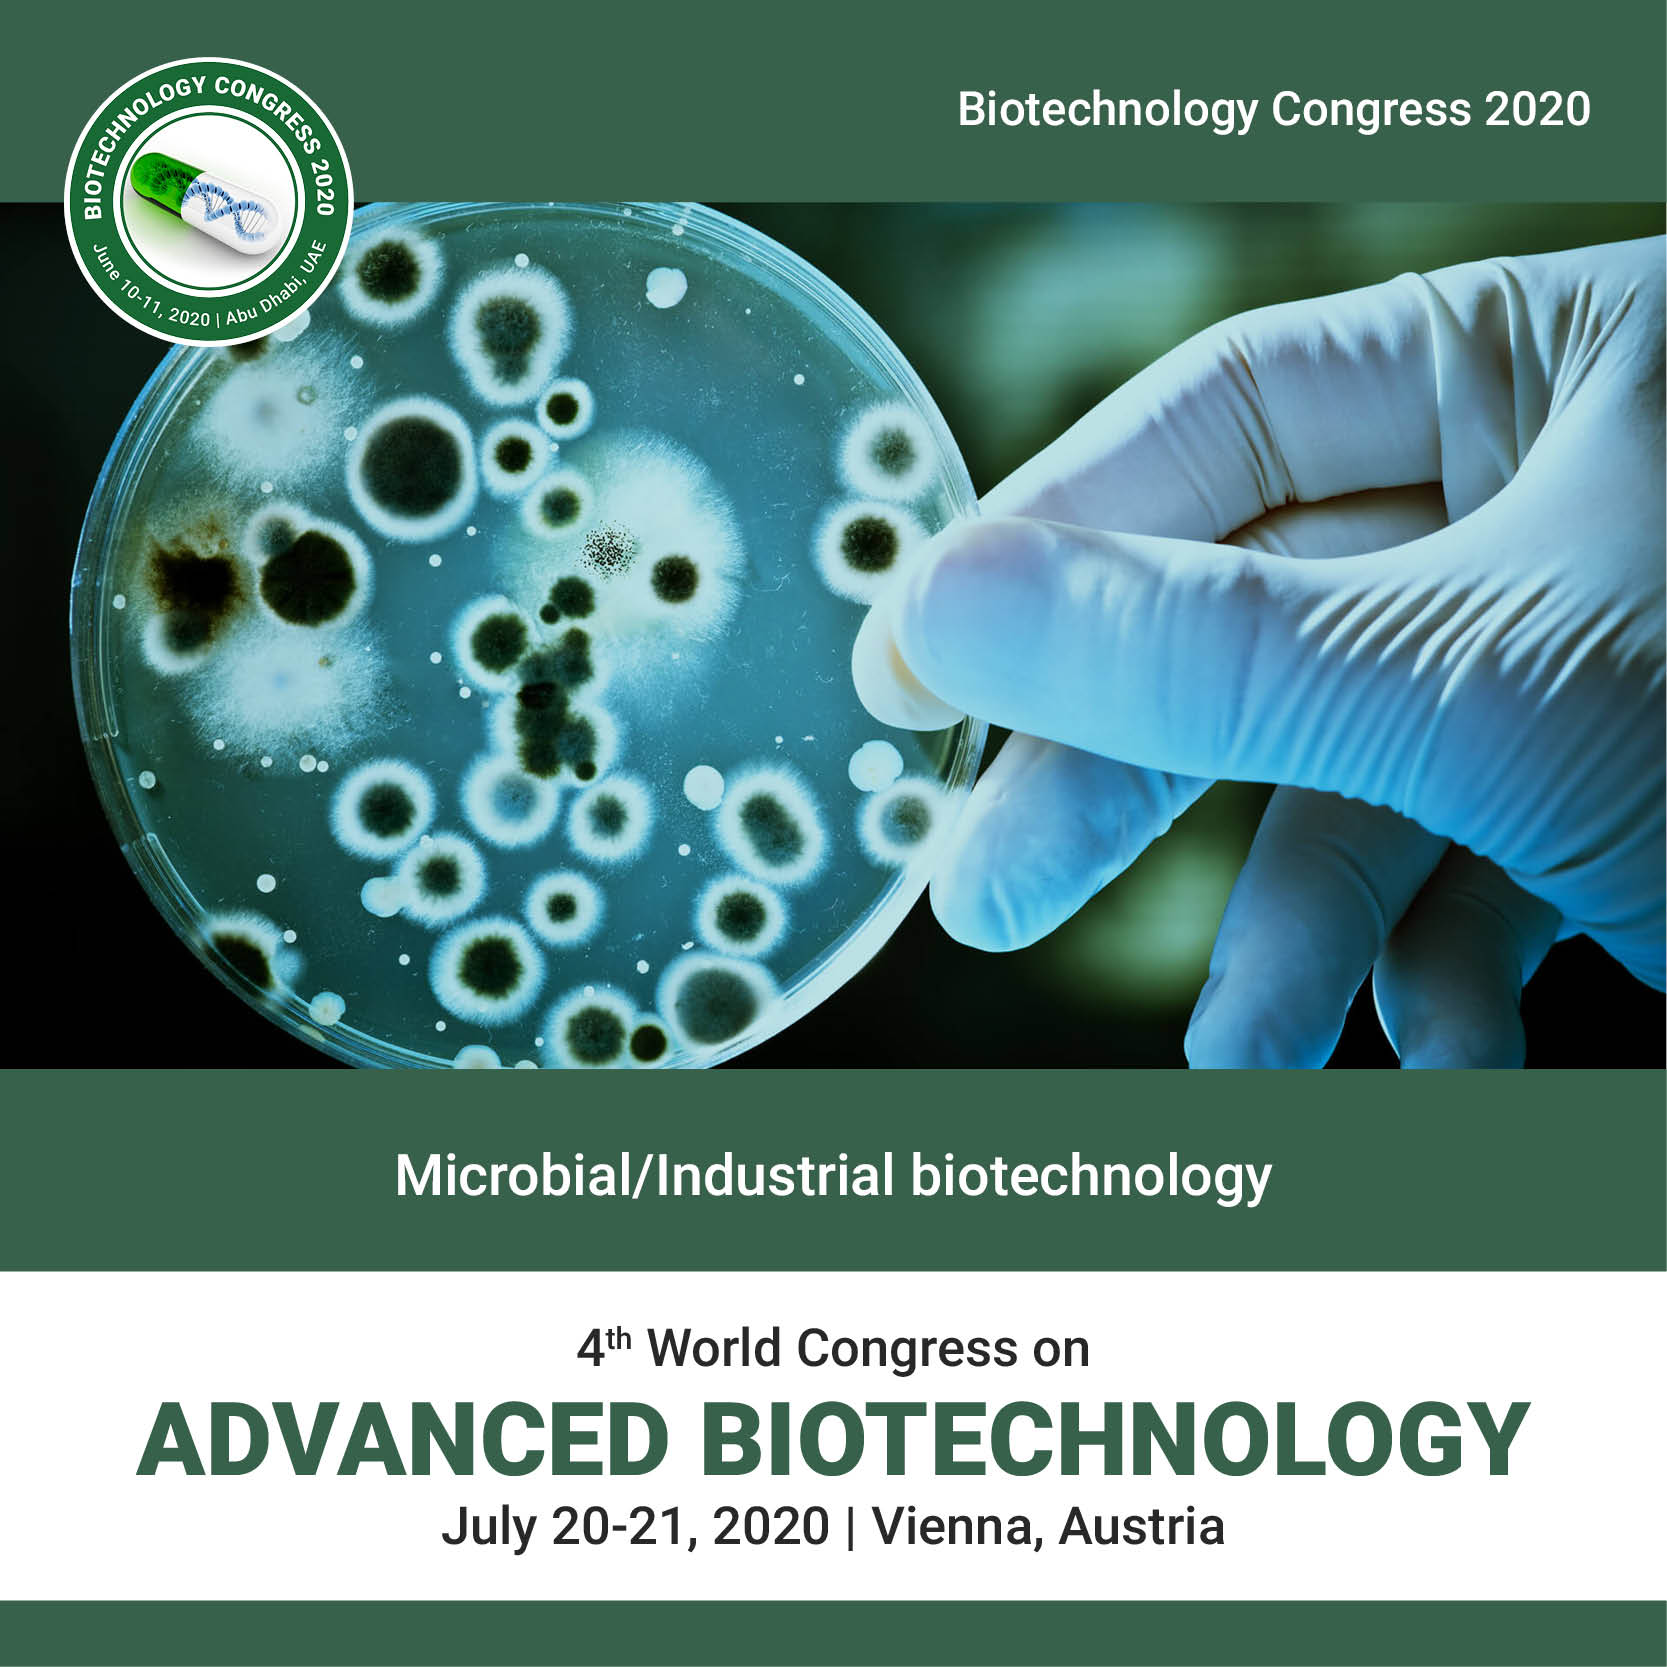 Microbial/Industrial Biotechnology Photo